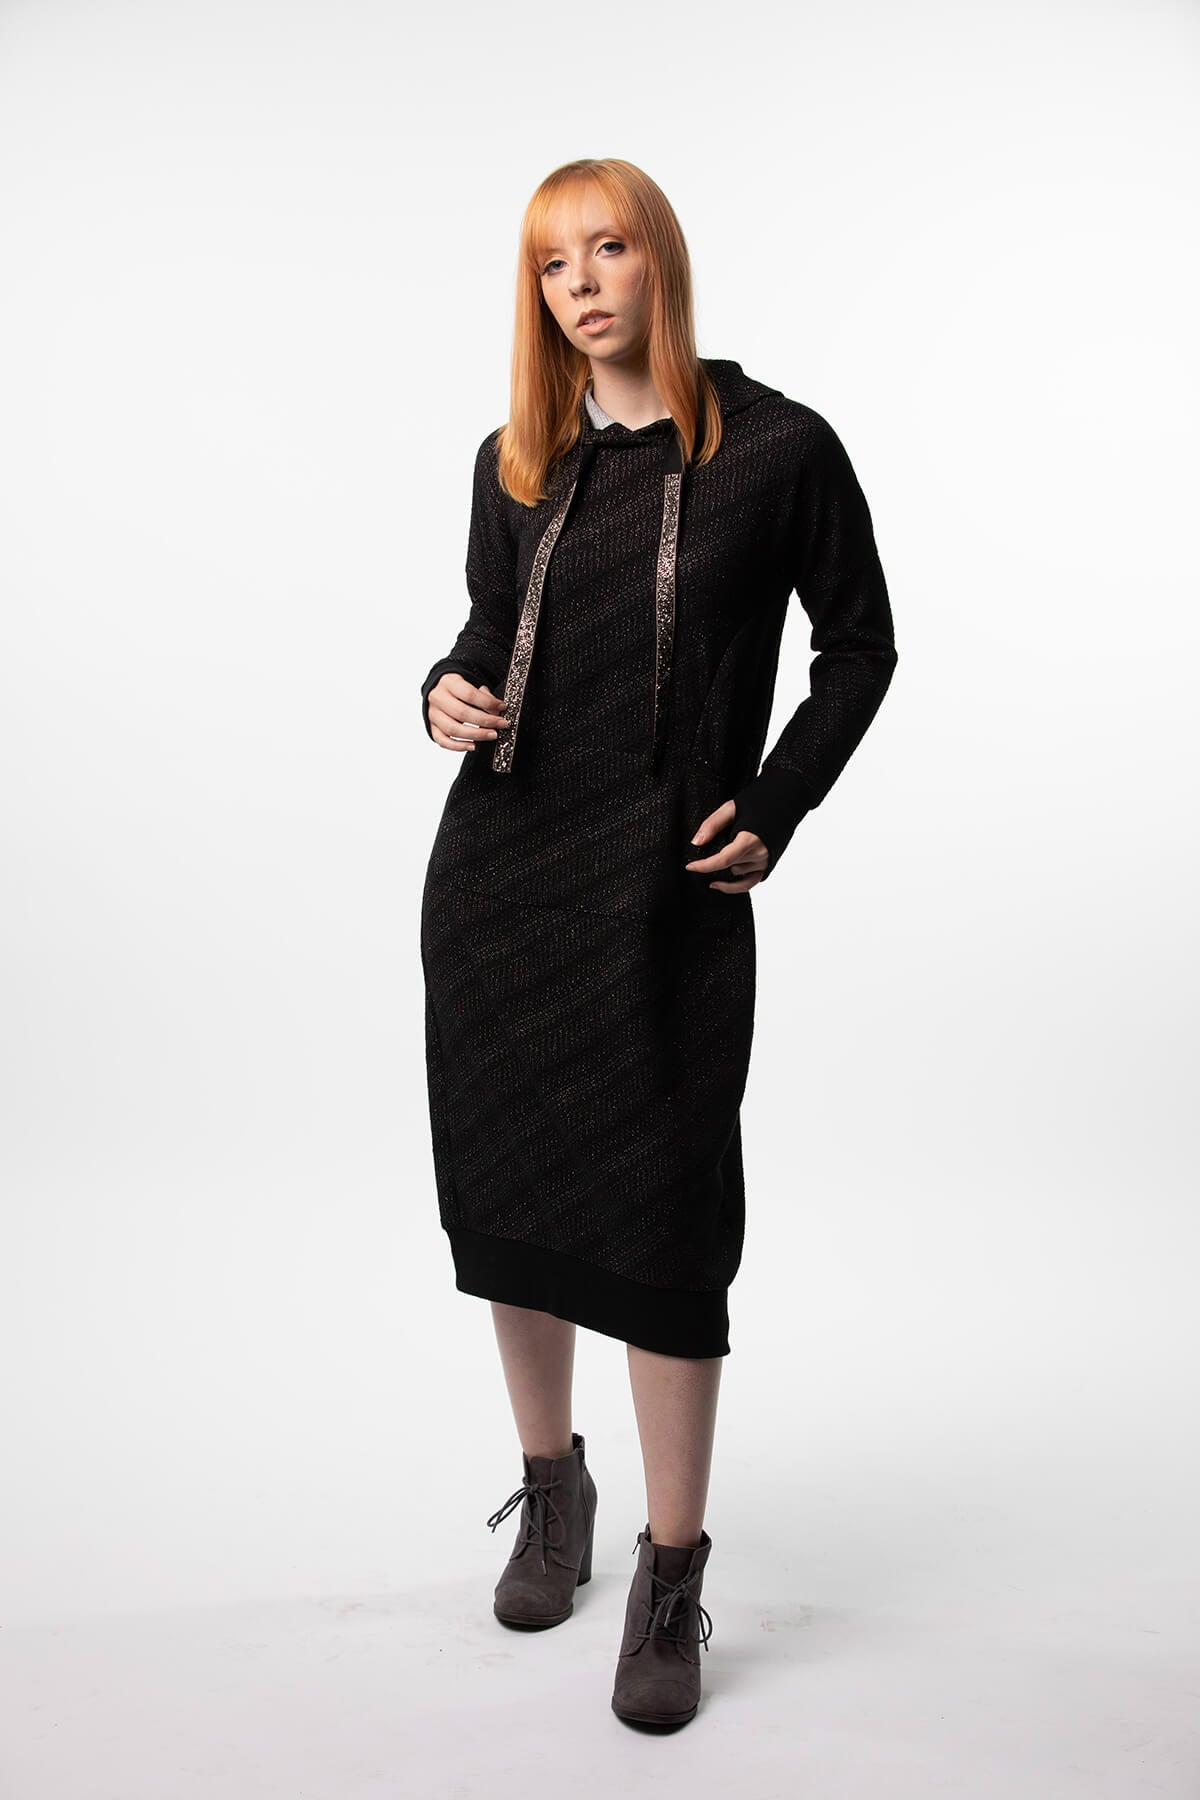 Sweatshirt dress with Rhinestone Drawstrings  in black, black and silver, and speckled grey